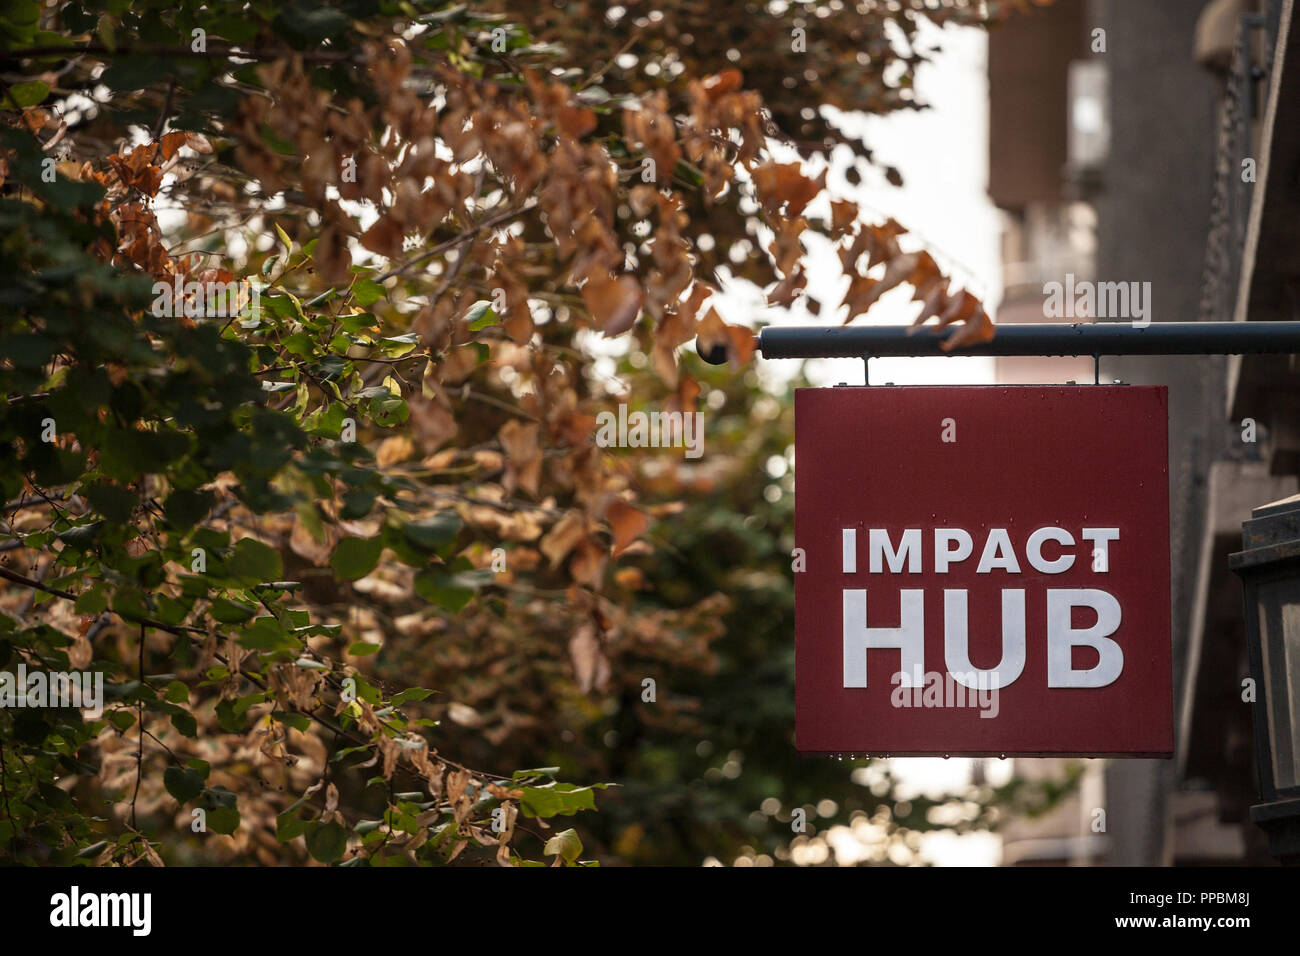 BELGRADE, SERBIA - SEPTEMBER 24, 2018: Logo of Impact Hub on their office in Belgrade. ImpactHub is a startup incubatore providing coworking and offic - Stock Image